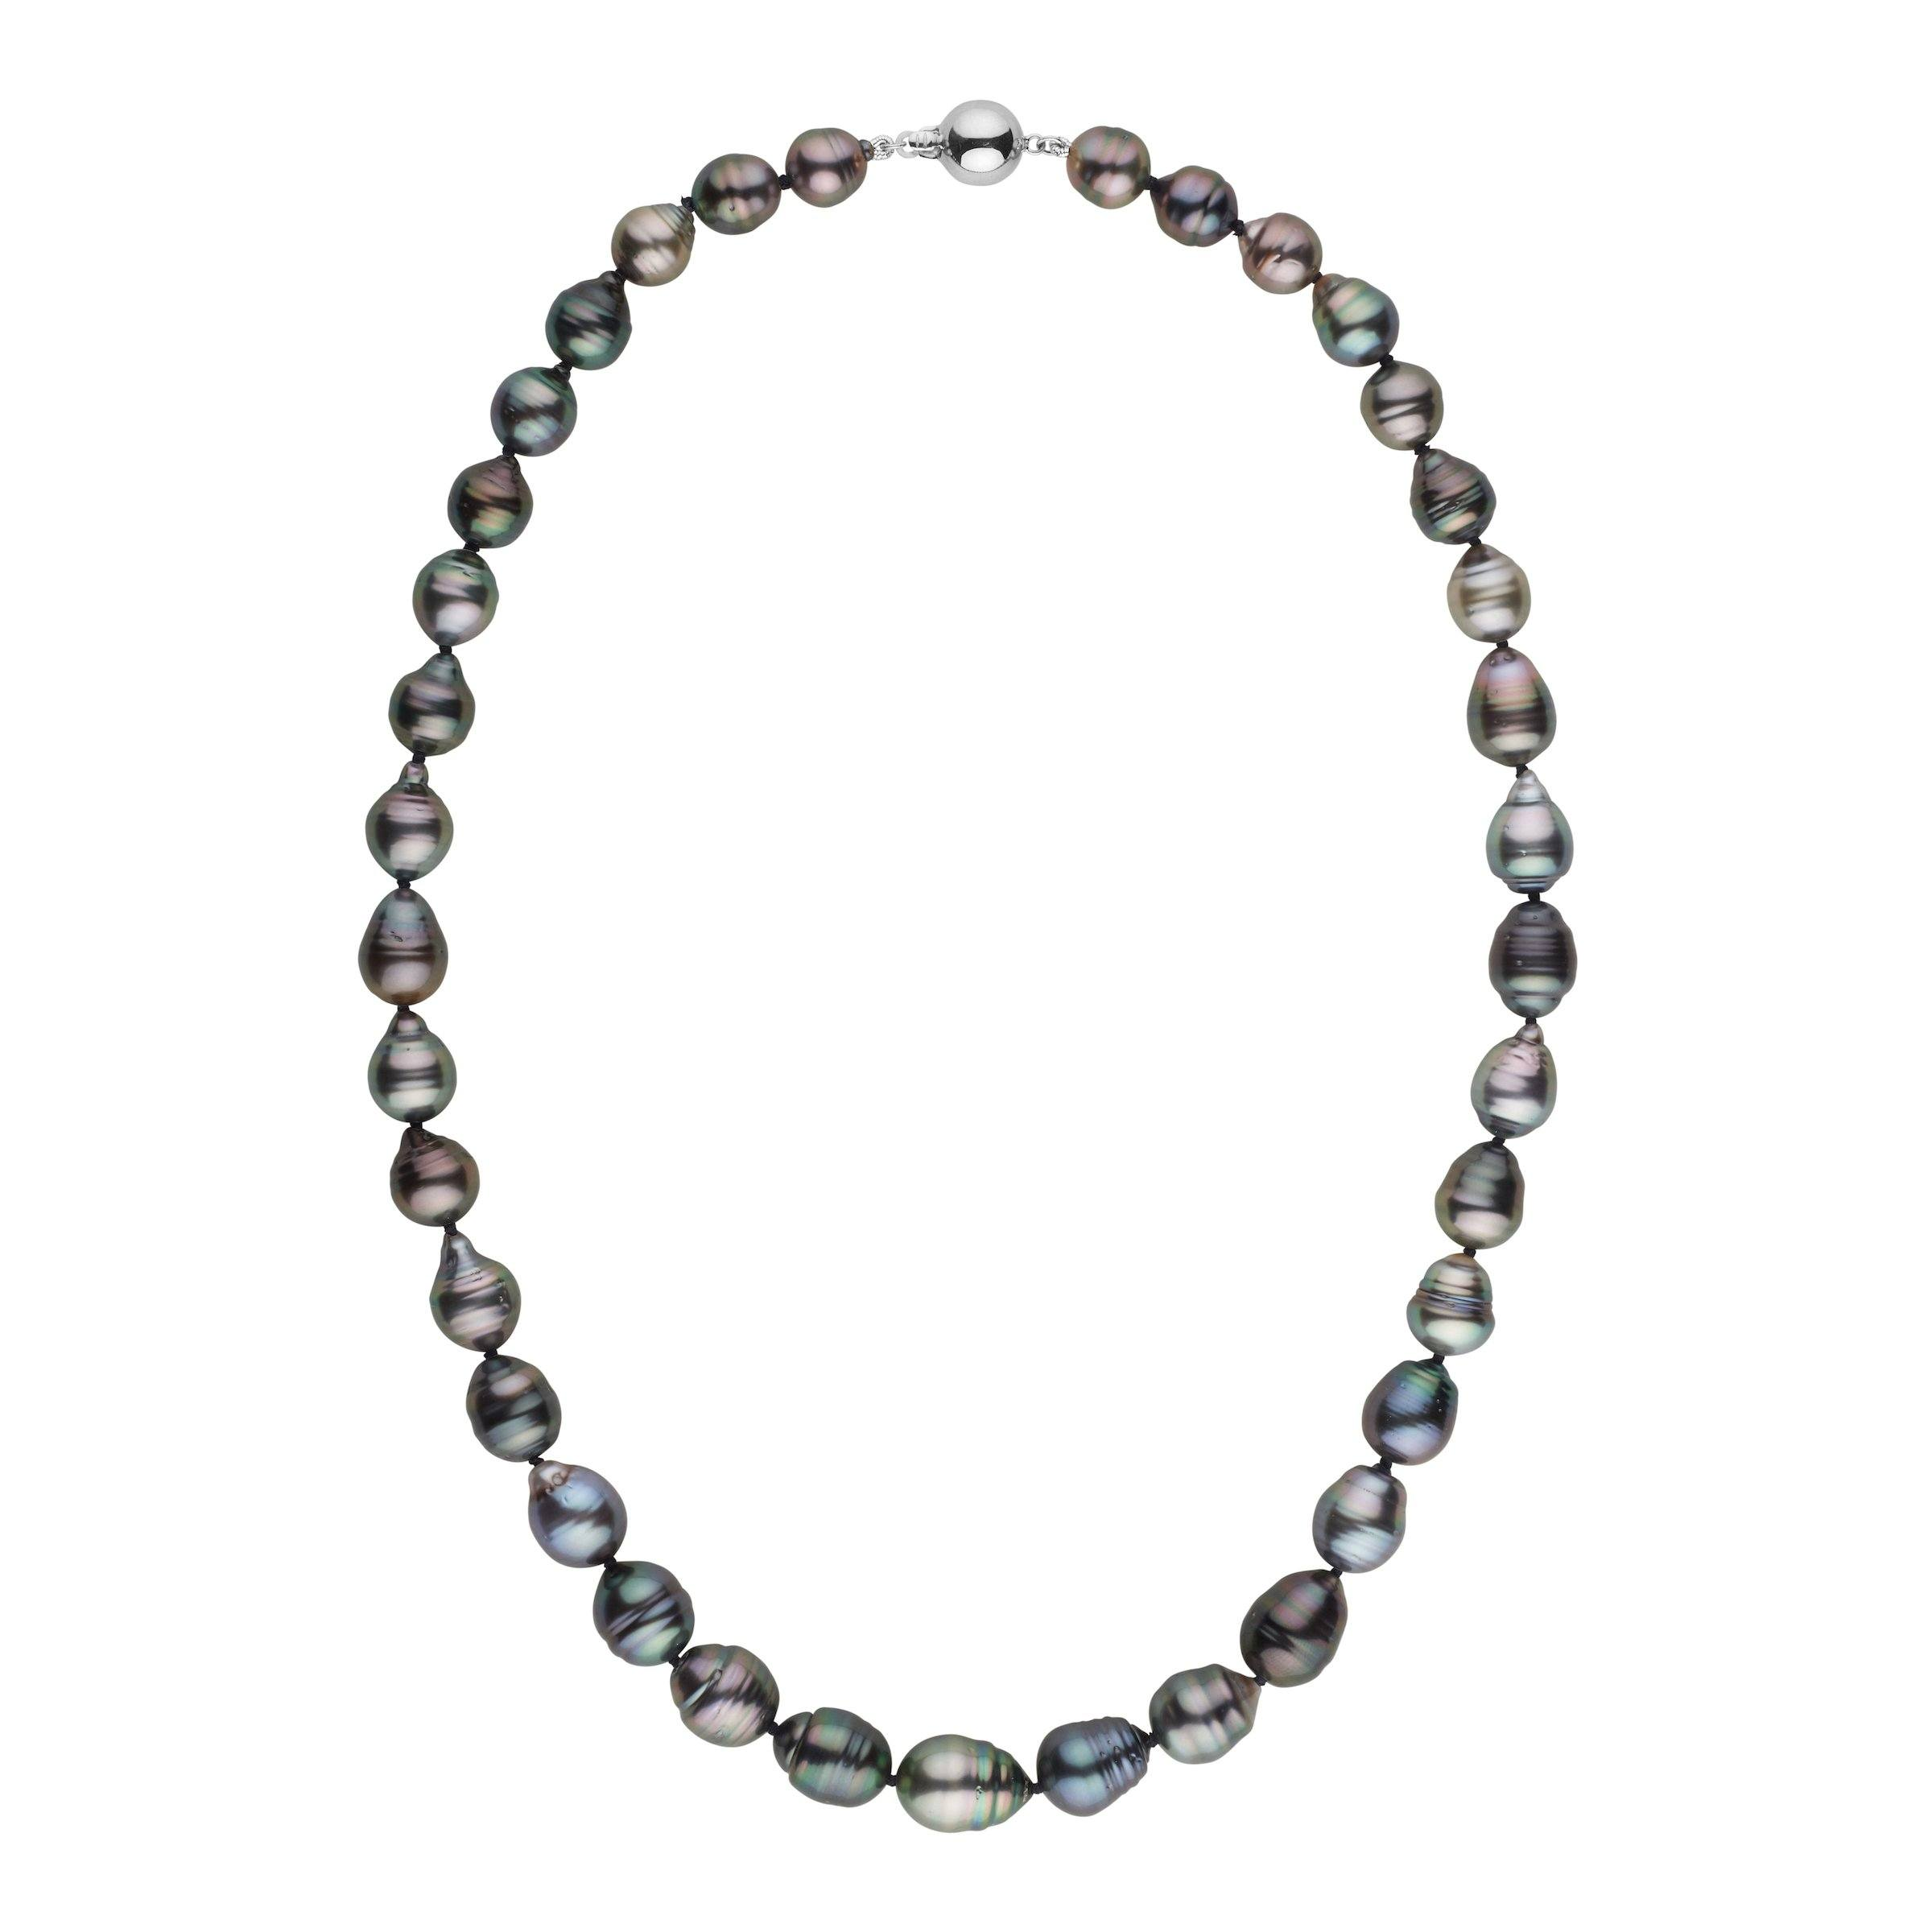 8.3-10.4 mm AA+/AAA Tahitian Baroque Pearl Necklace